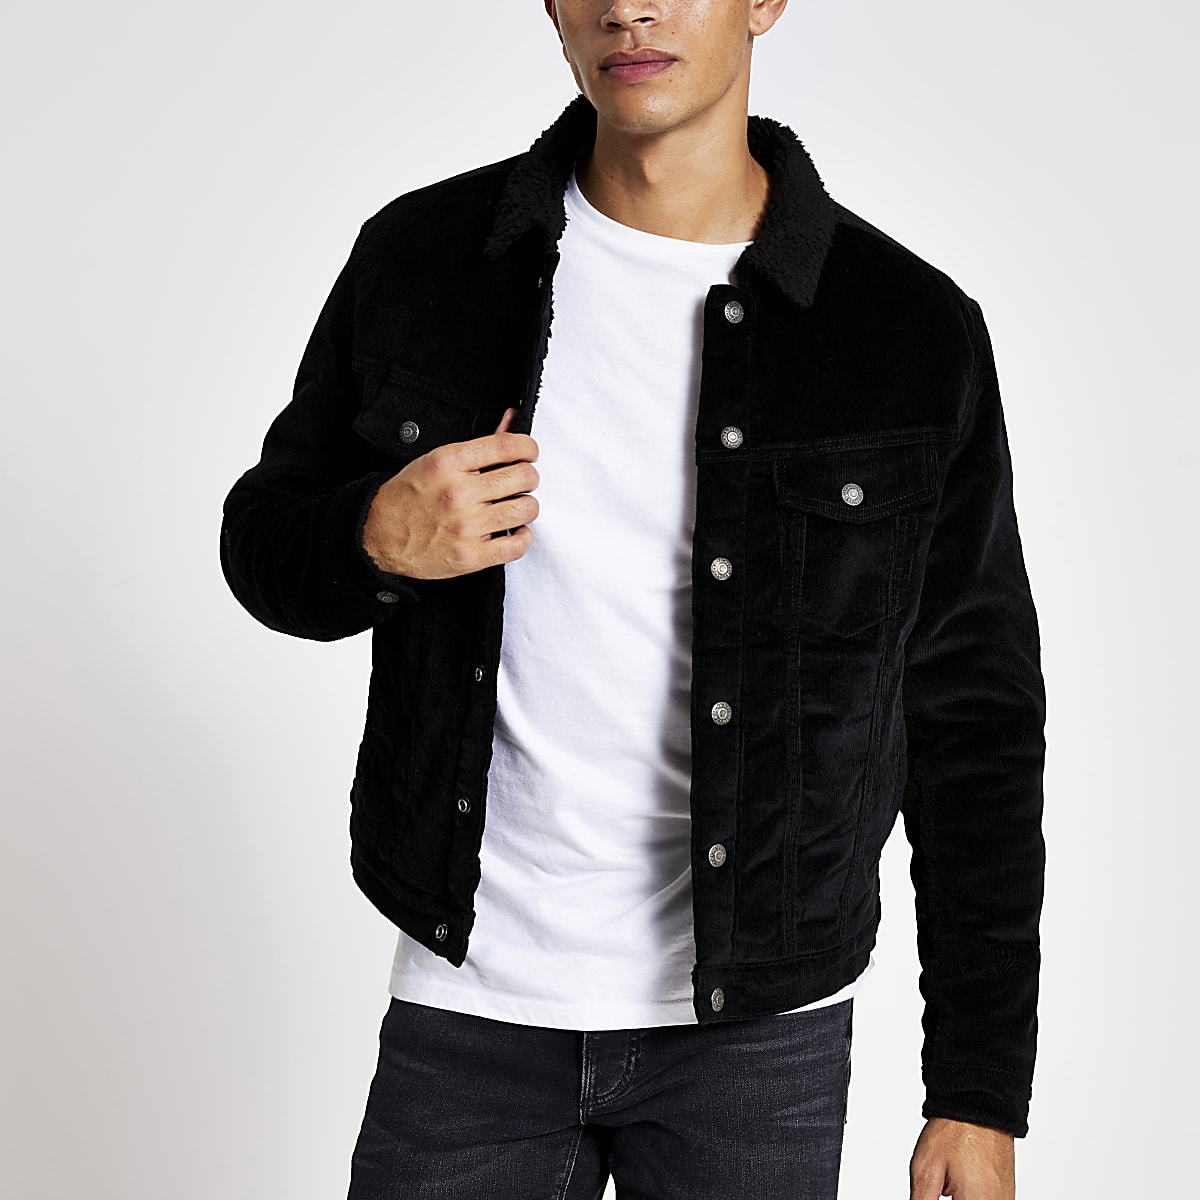 Jack and Jones black borg collar cord jacket